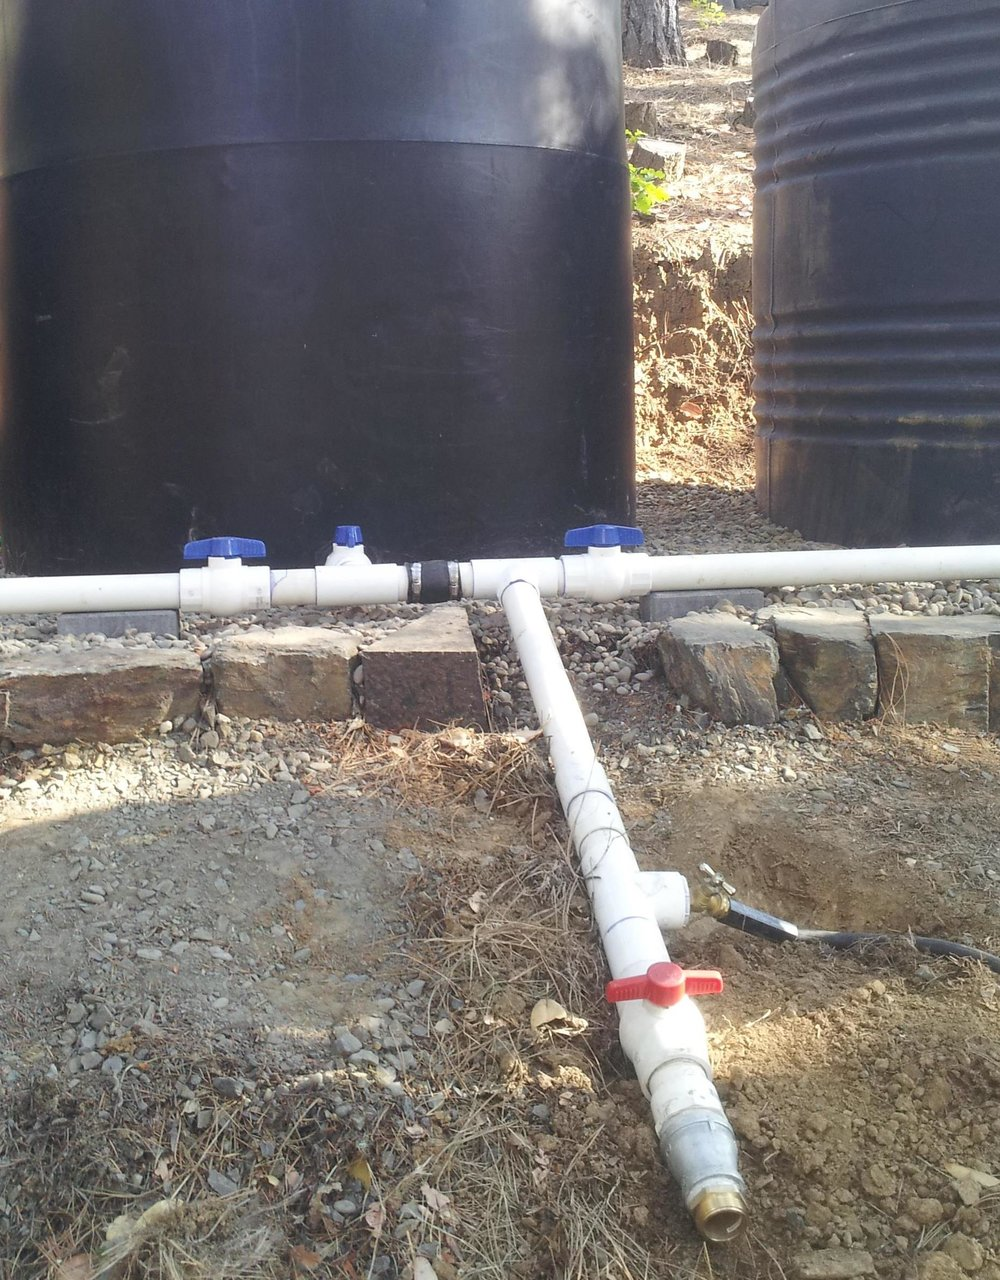 Tank manifold valves permit tanks to be isolated for repairs, cleaning, or to play a role in water use management.